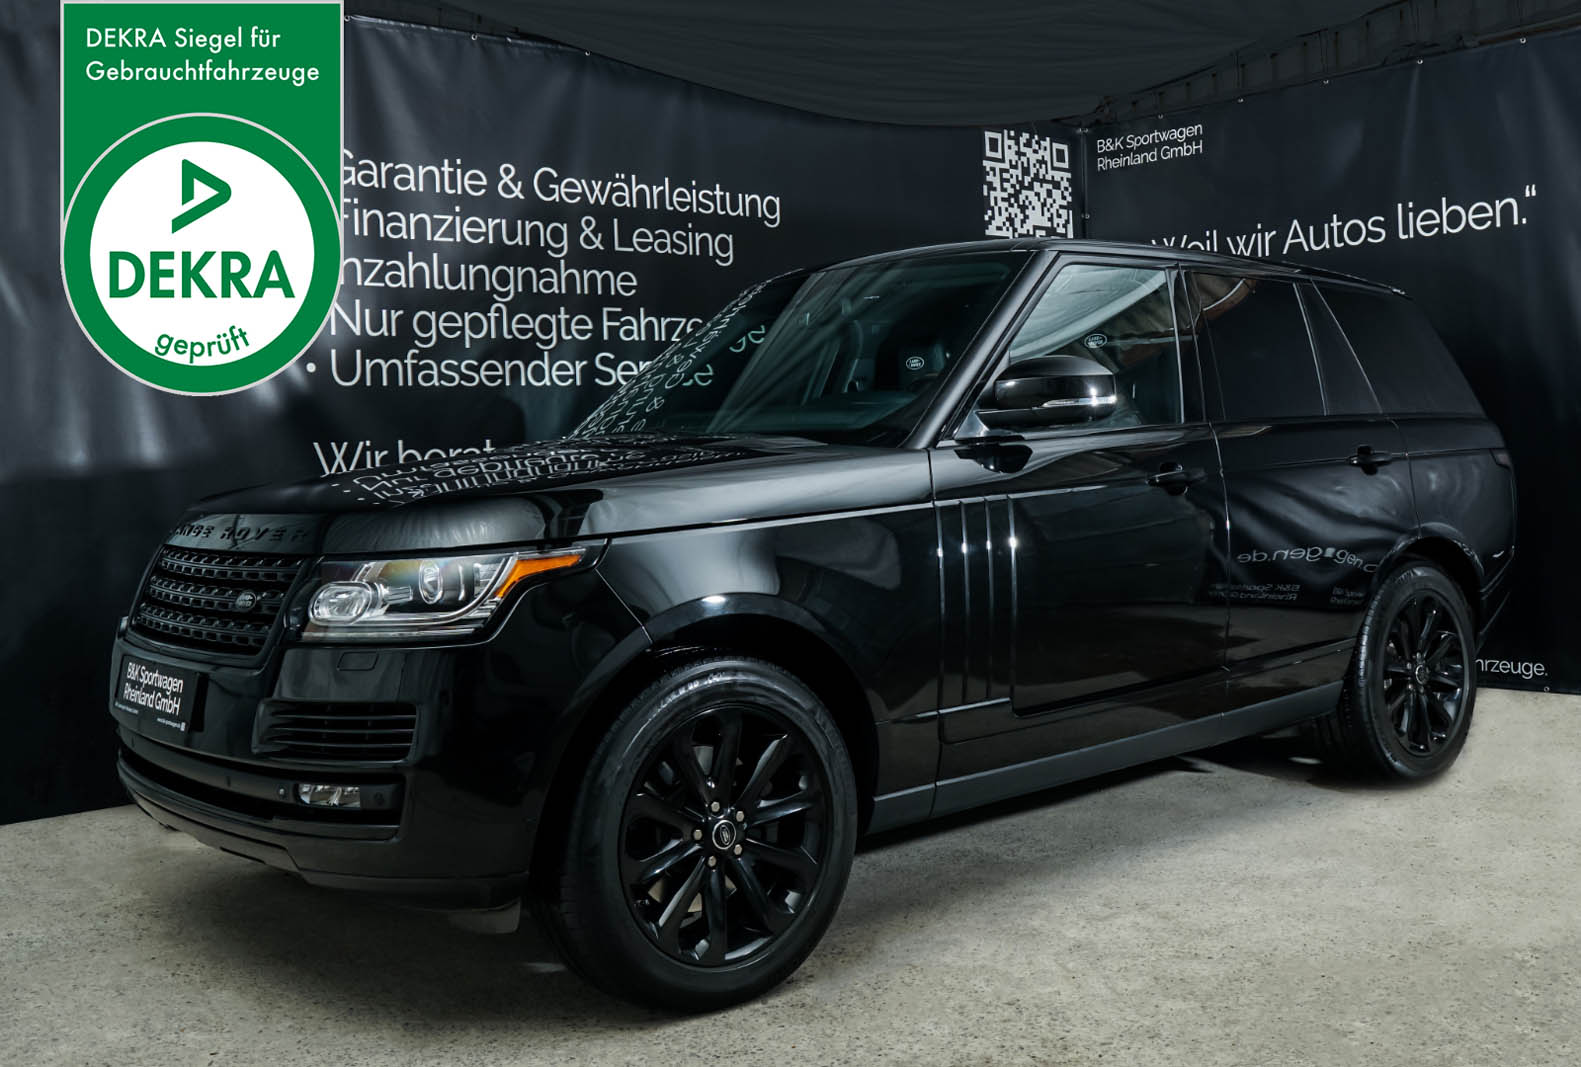 land_rover_range_hse_vogue_black_LAN-7341_dekra